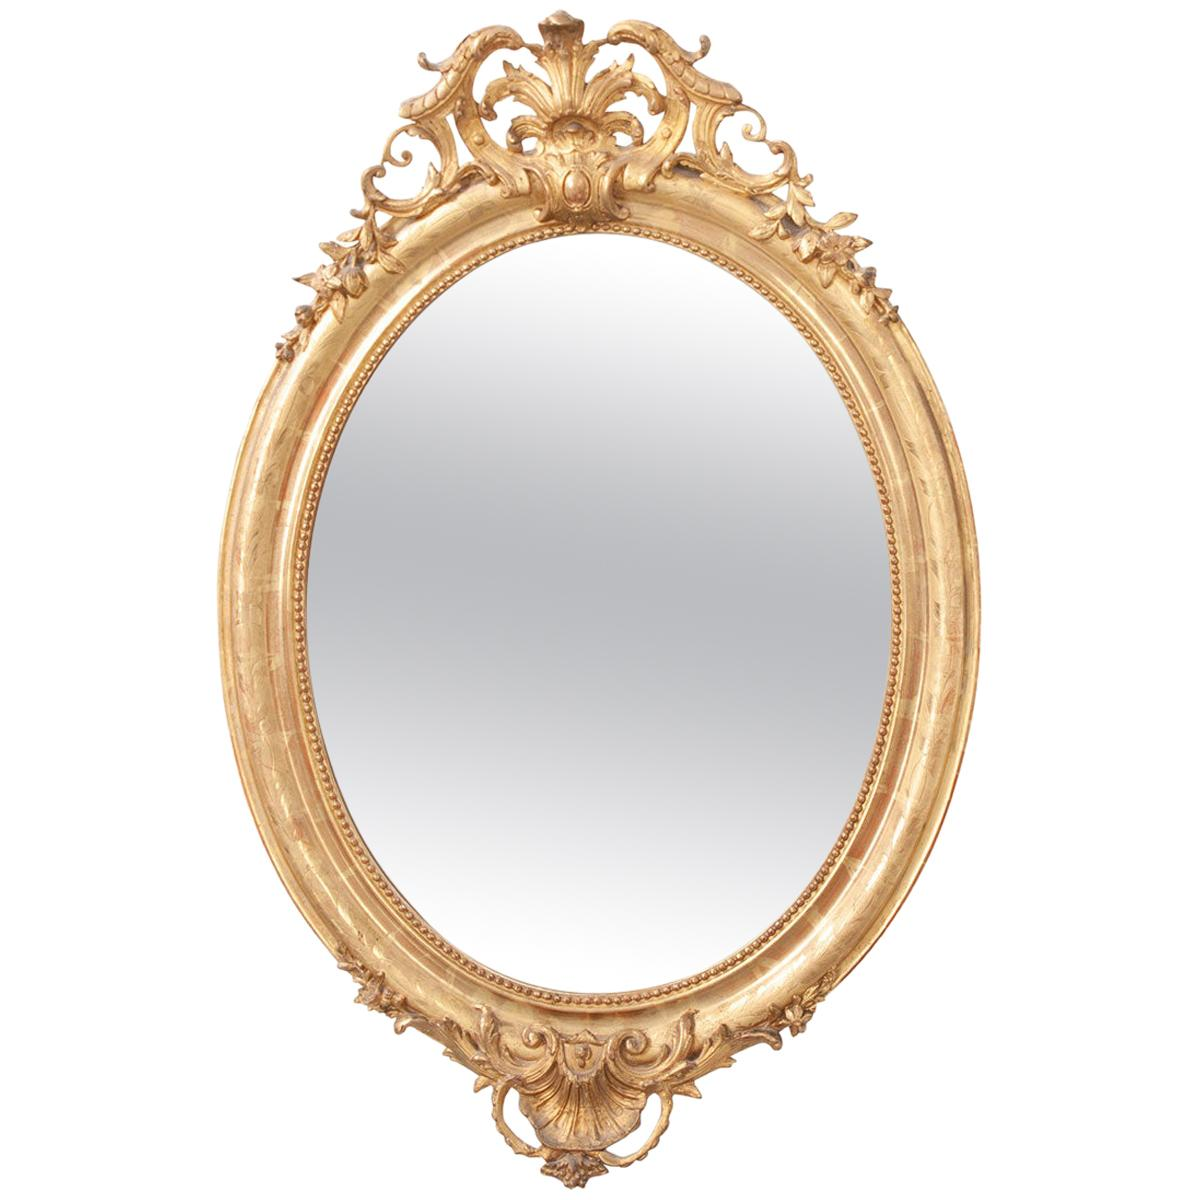 French 19th Century Oval Gold Gilt Mirror